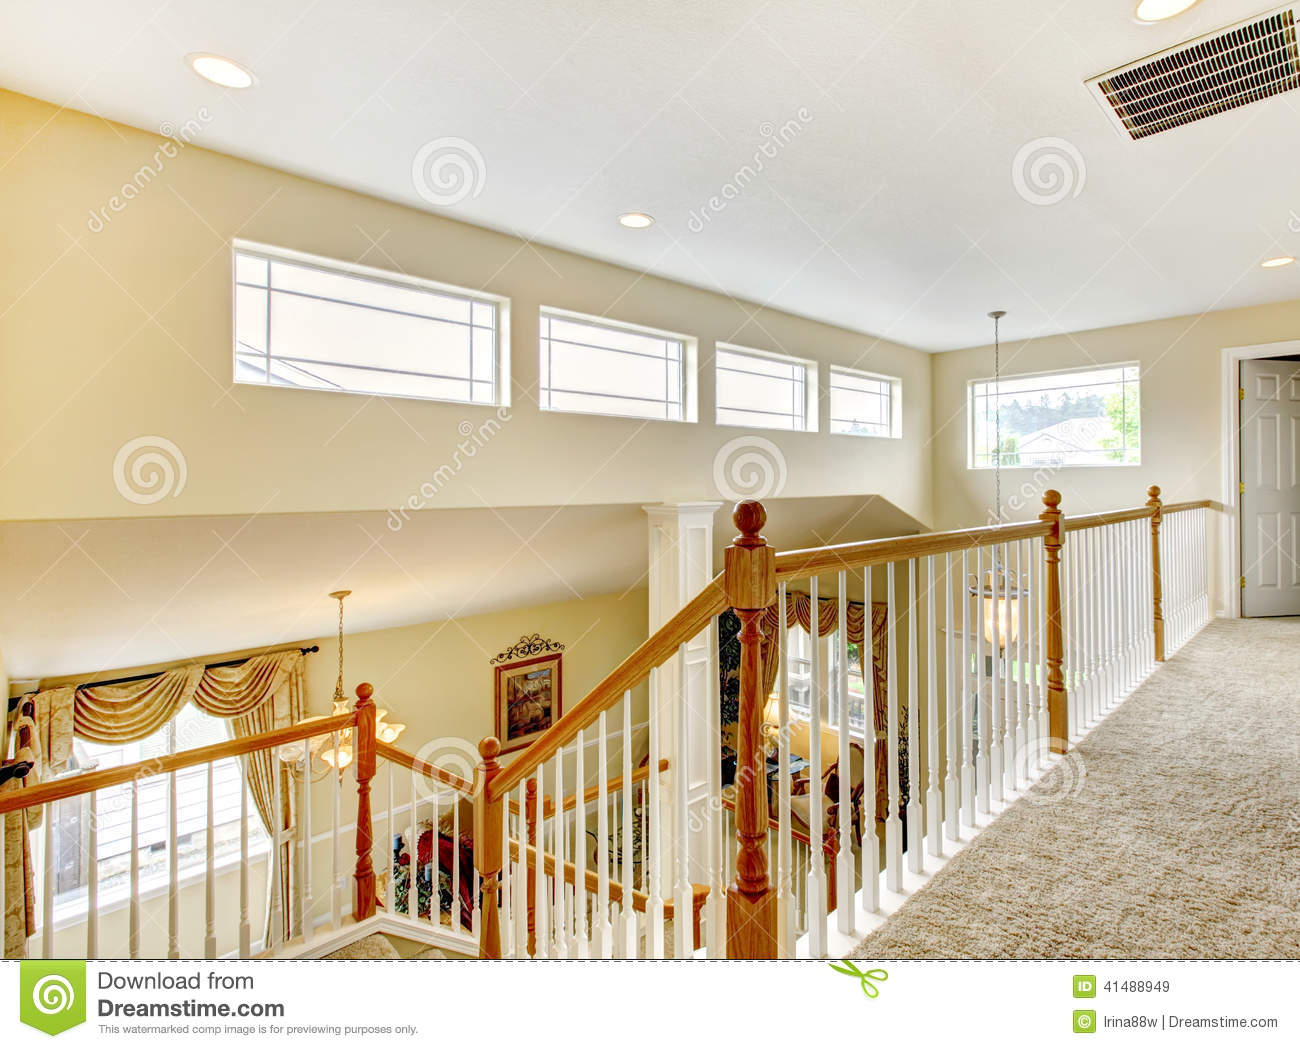 Stock Photo House Inteior Indoor Balcony Bright View Living Room Stairs Image41488949 on House Plans With Simple Construction